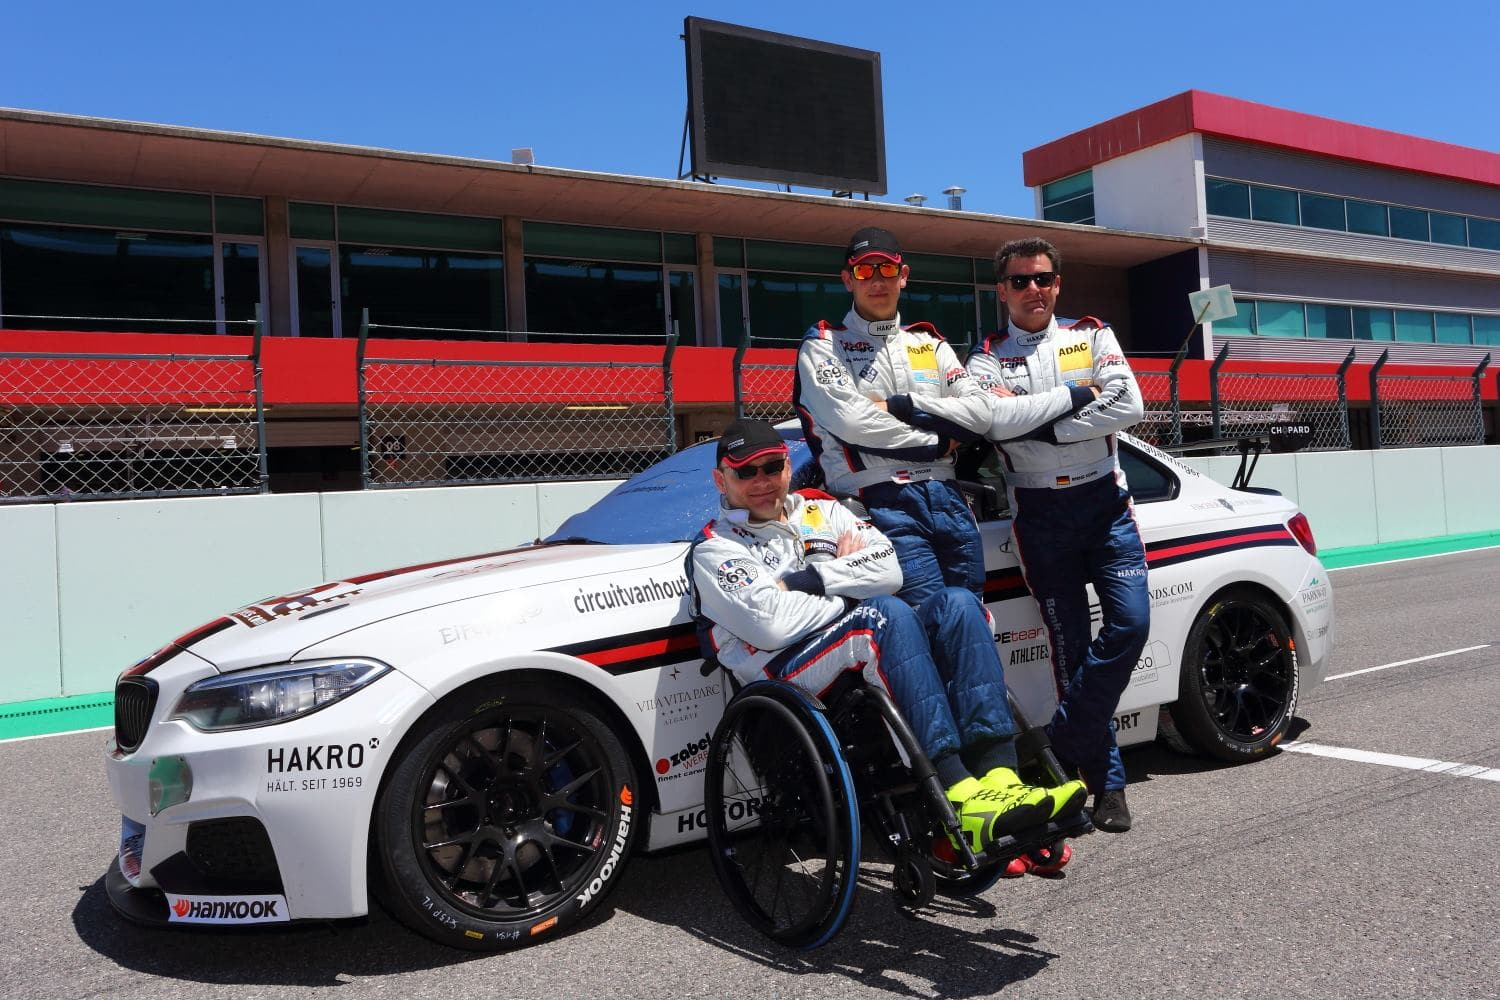 37591163 2059643430776801 6217465687858741248 o - 24hseries.com > Championchips of the Continents  Stop 2 Portimao/Portugal